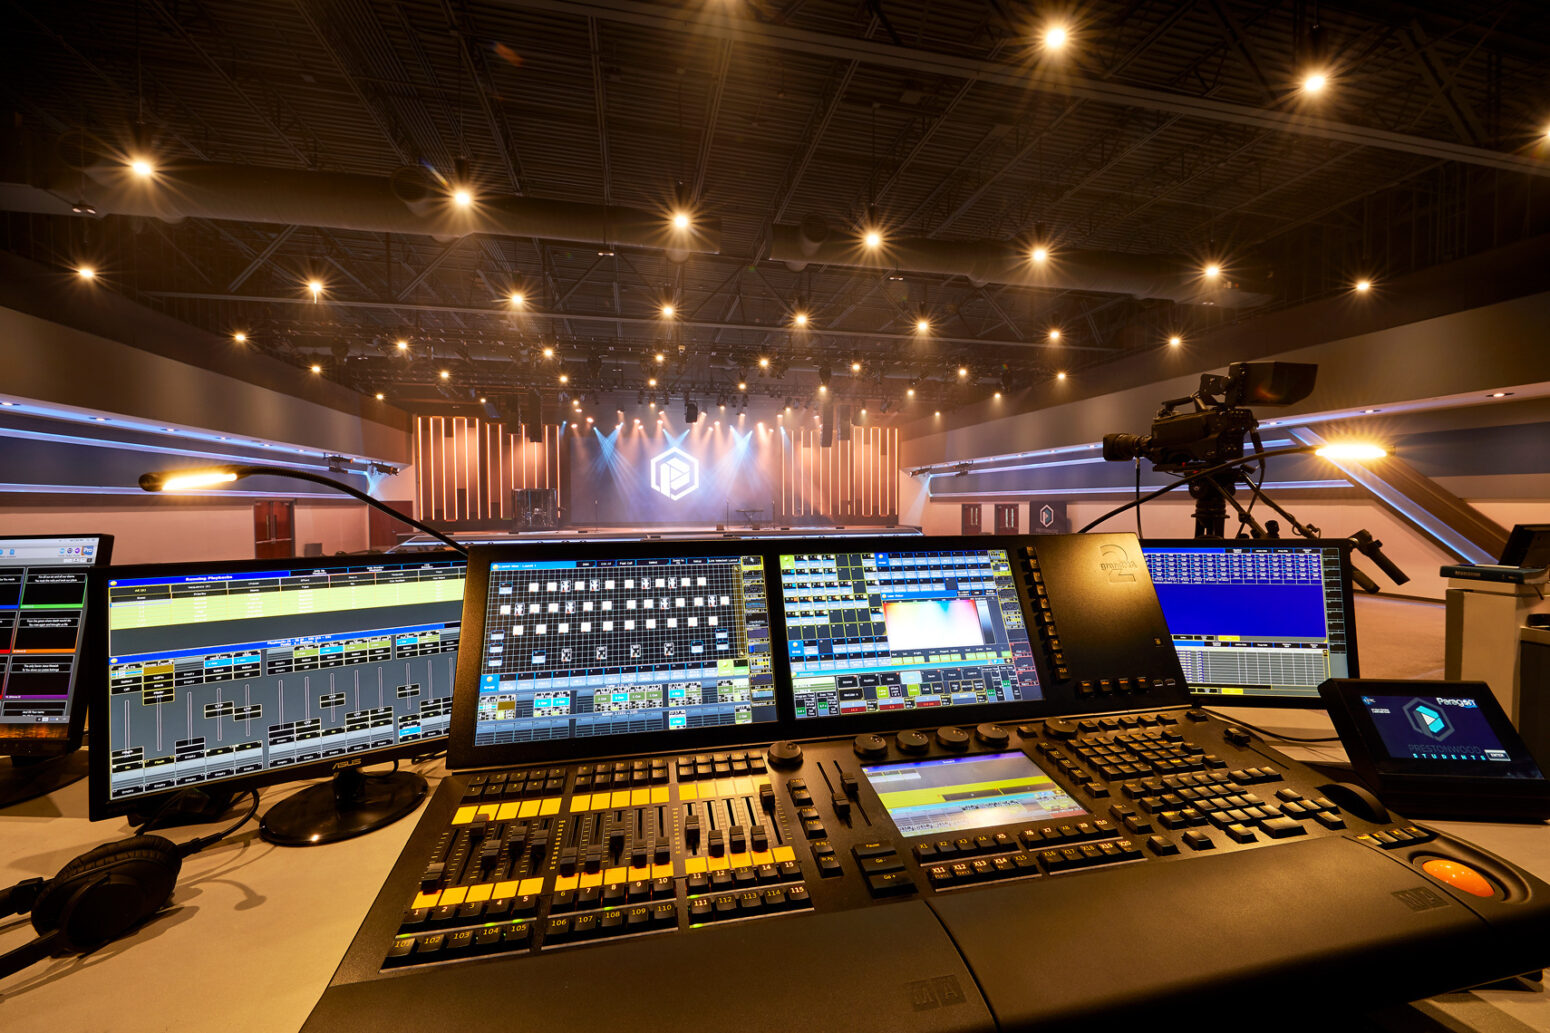 These controls for LED church stage lighting and AVL church speakers give Prestonwood Baptist control.